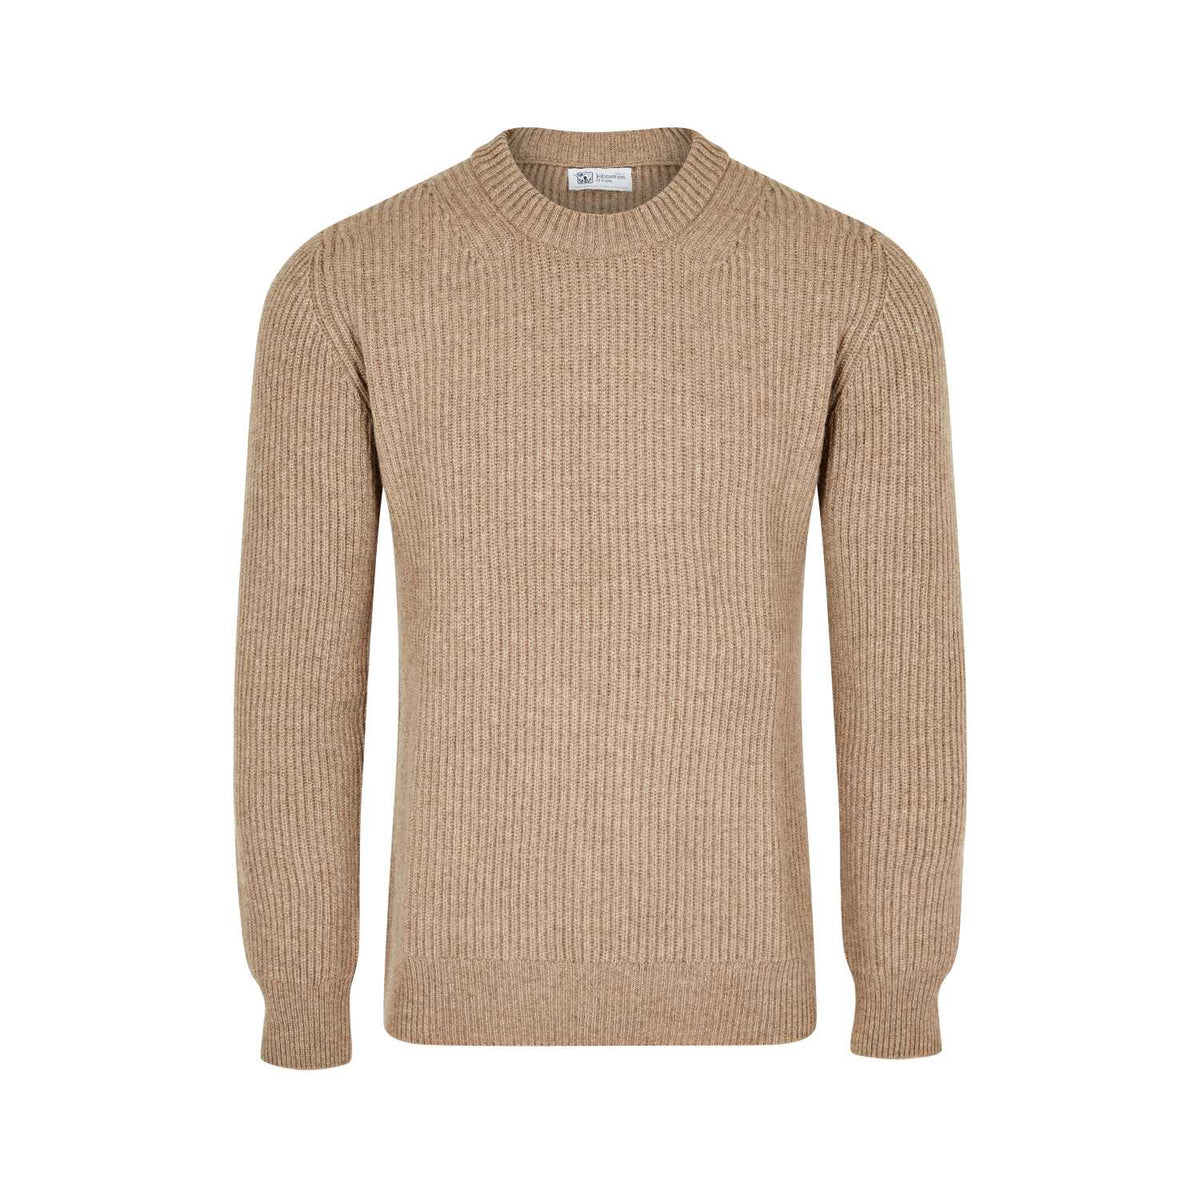 Johnsons Cashmere | Mens 12-Ply Cashmere Ribbed Round Neck Sweater | Otter Beige | Shop now at The Cashmere Choice | London